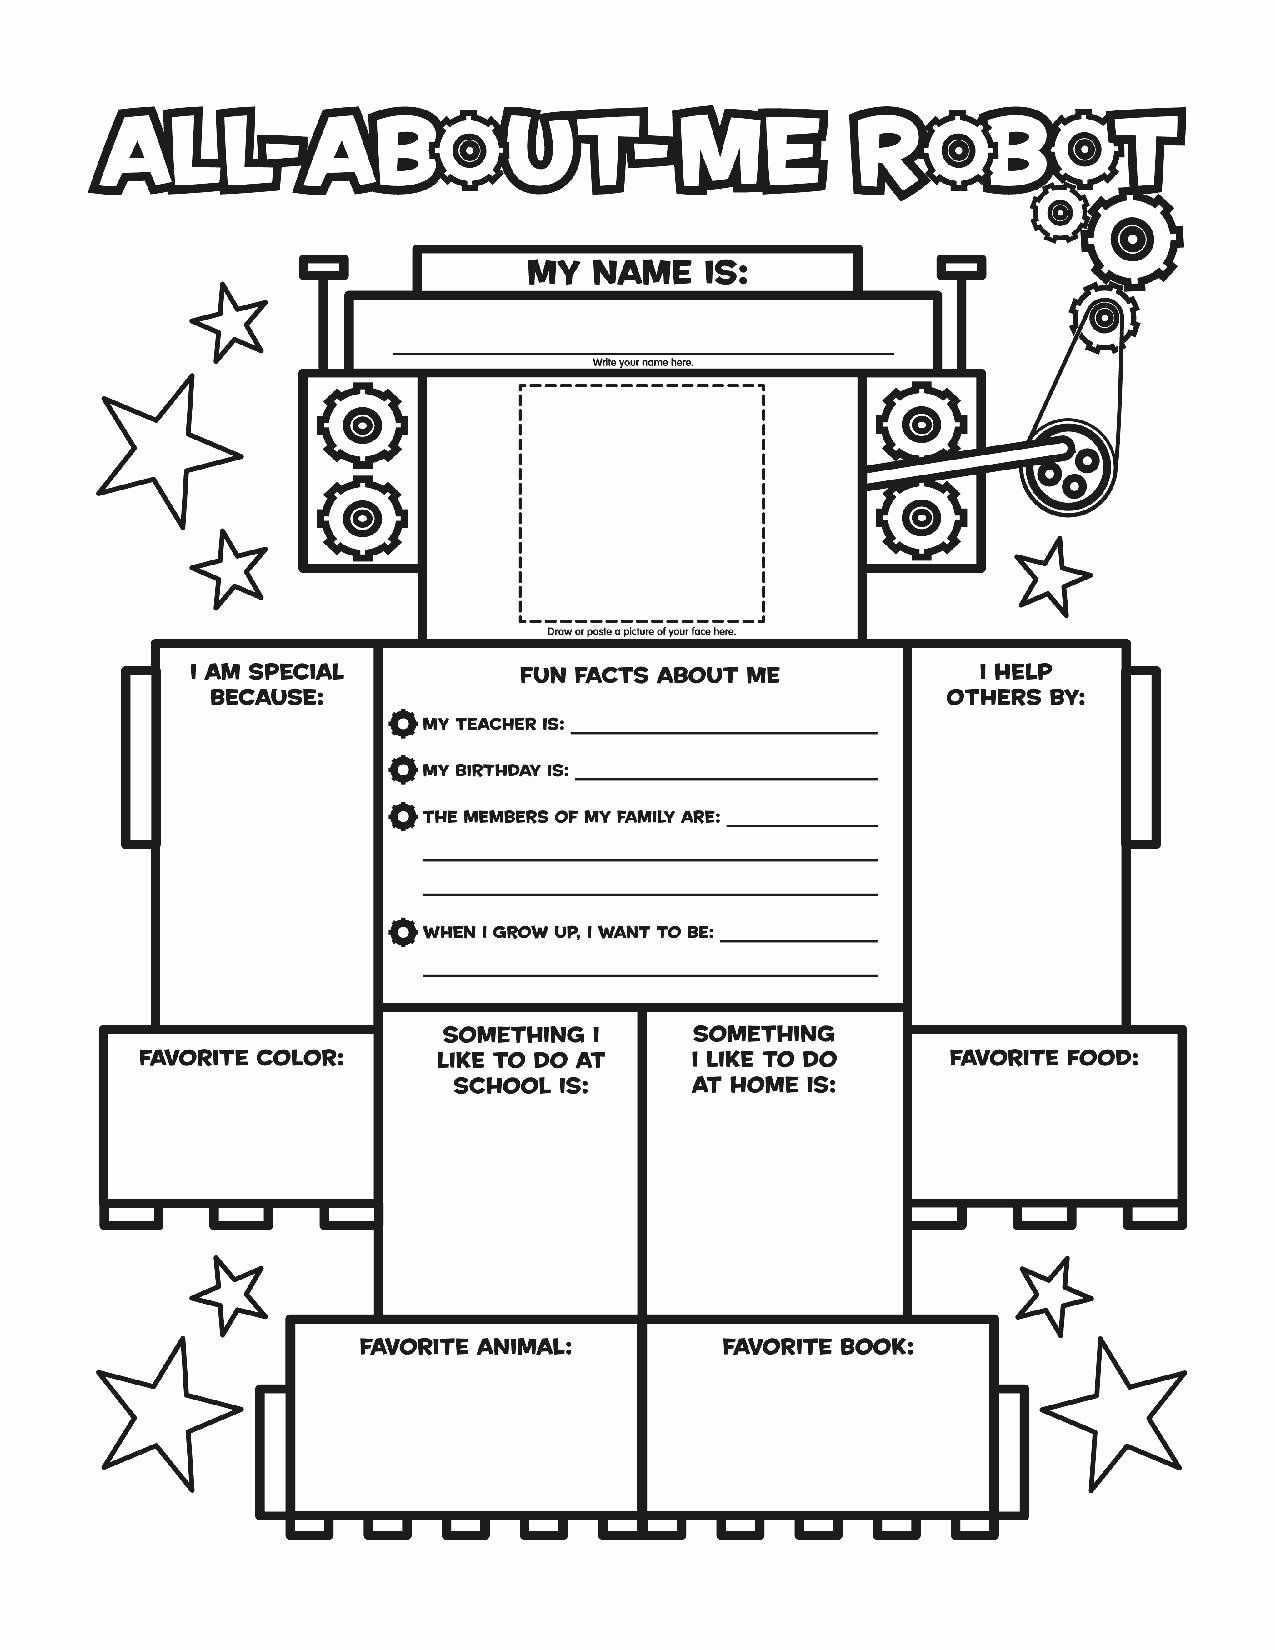 All About Me Printable Worksheet New All About Me